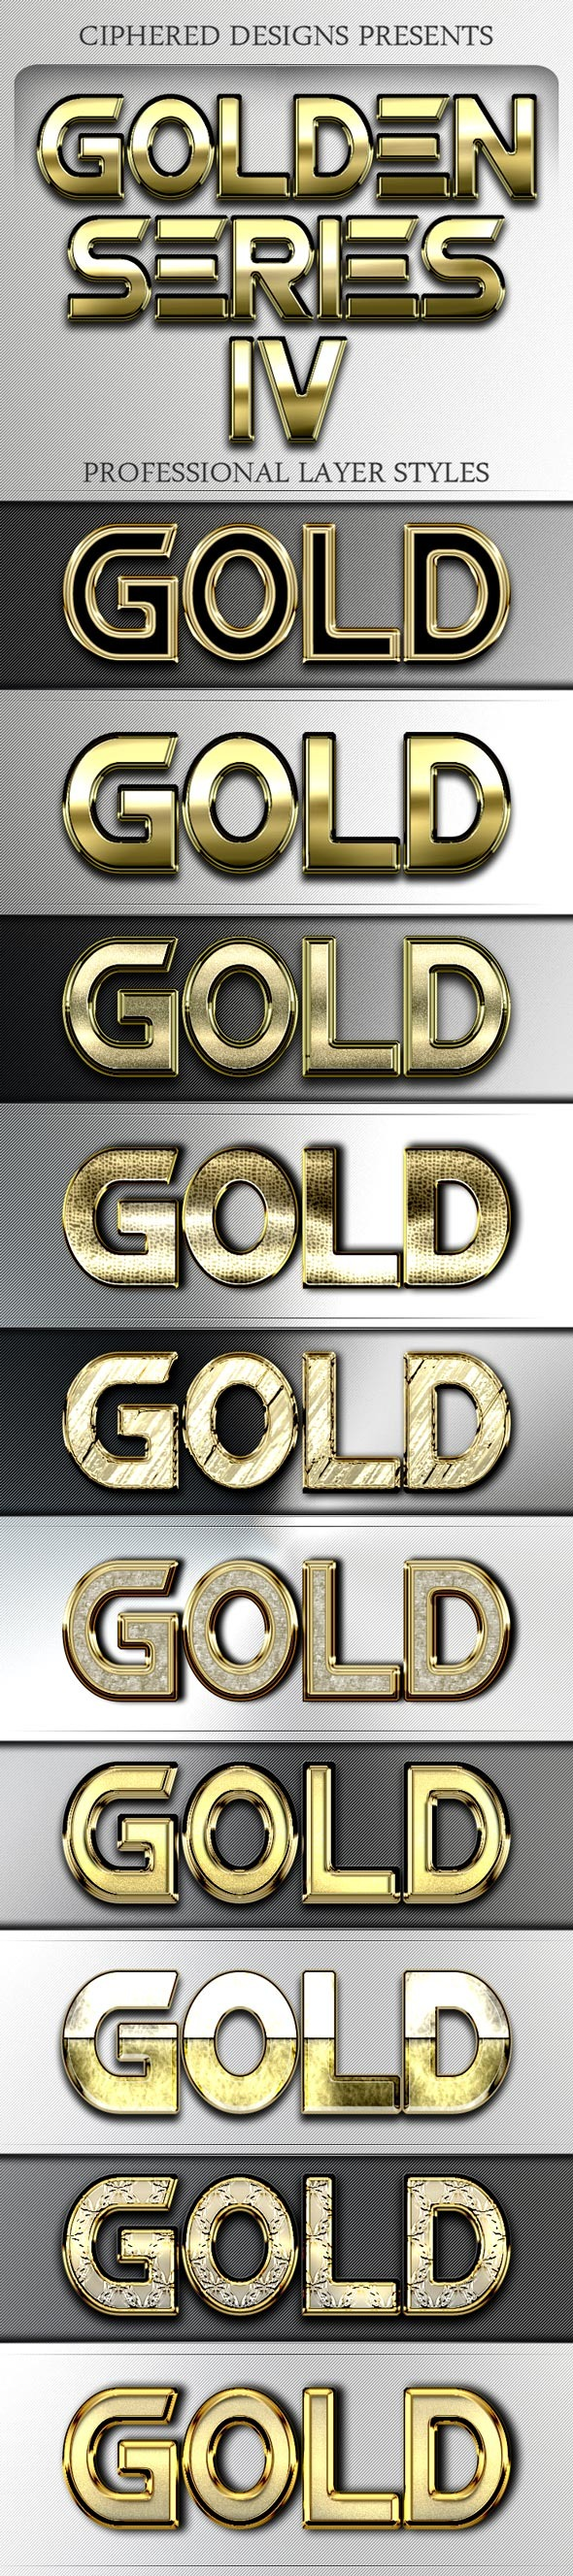 Golden Series IV - Professional Layer Styles - Text Effects Styles